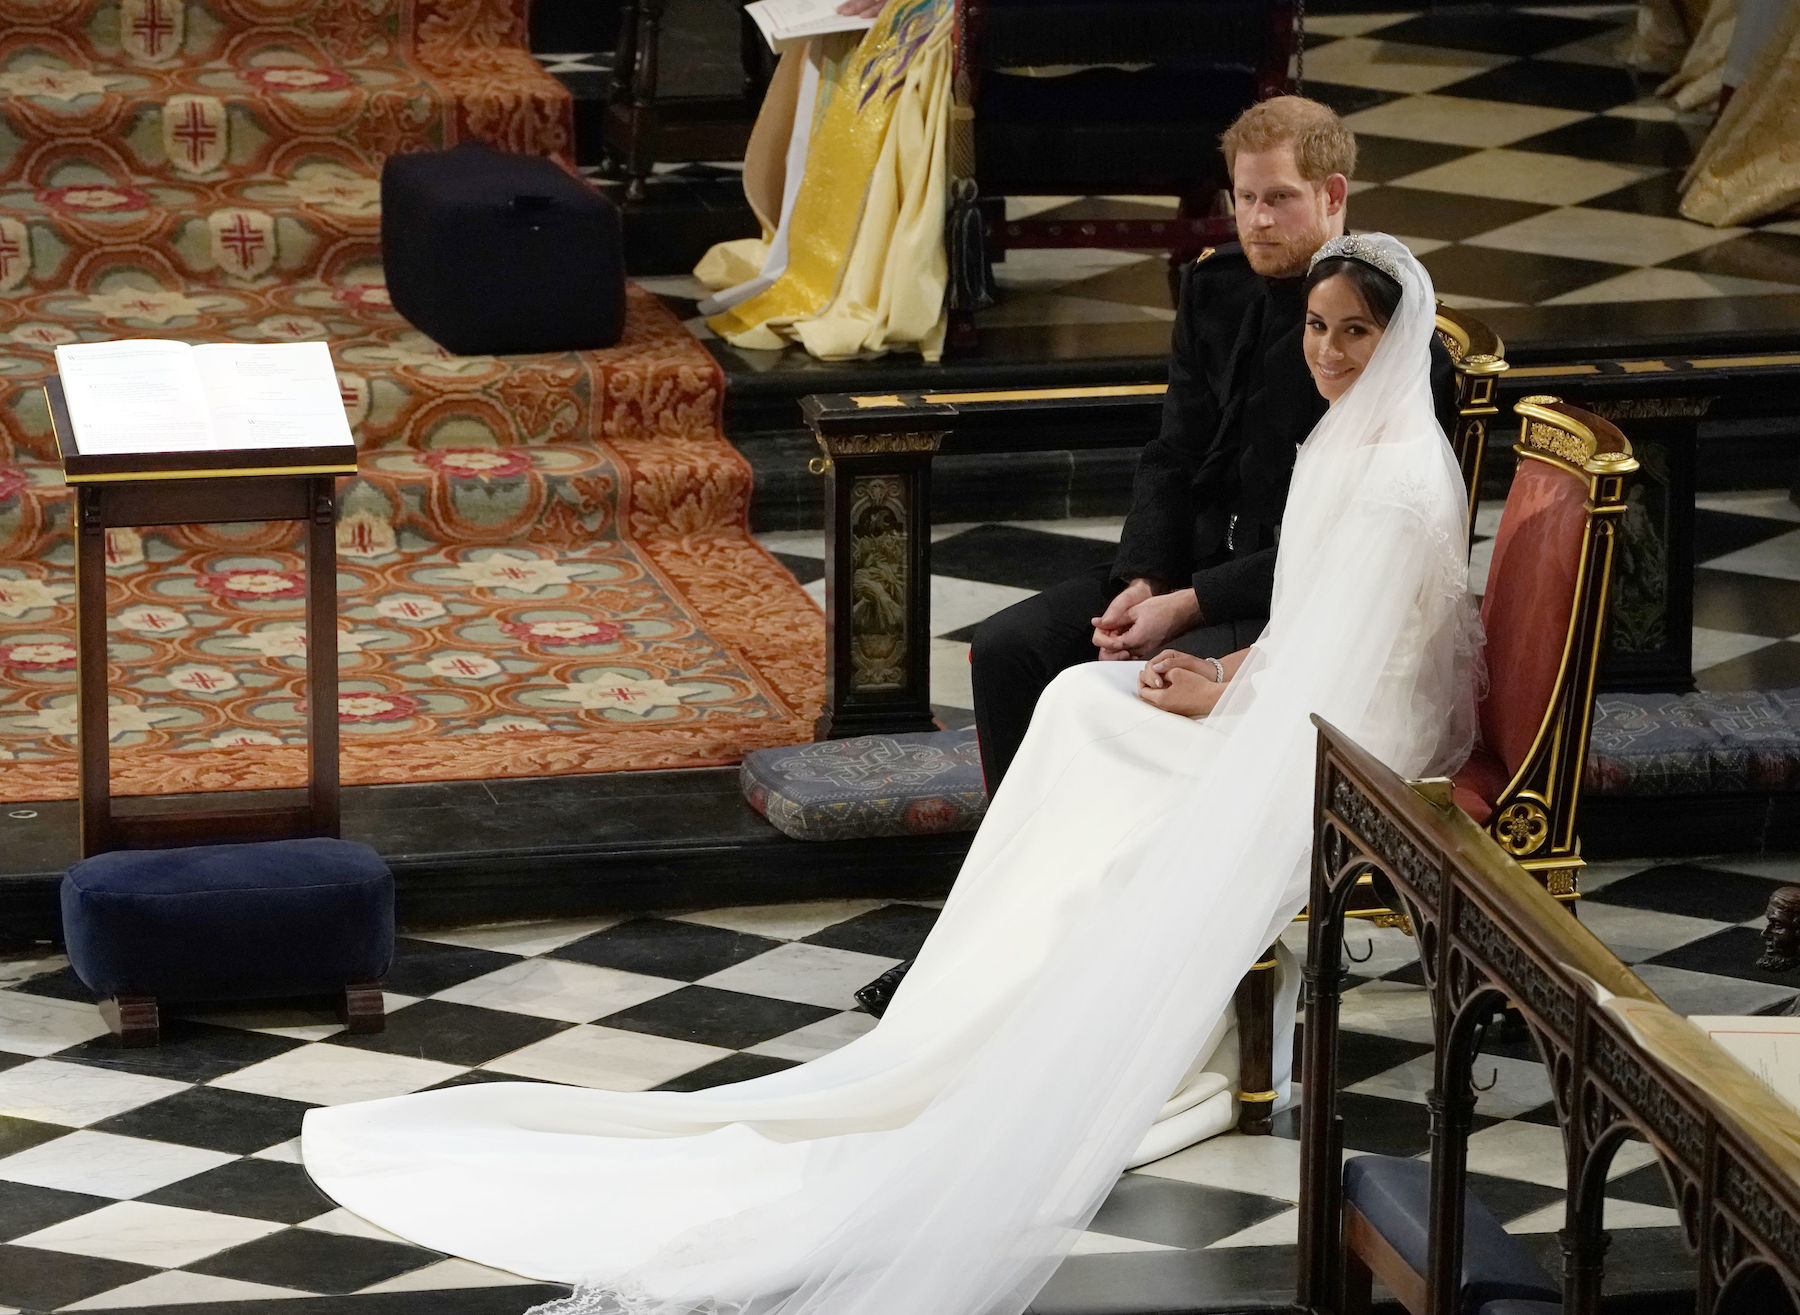 "<div class=""meta image-caption""><div class=""origin-logo origin-image kgo""><span>kgo</span></div><span class=""caption-text"">Britain's Prince Harry, Duke of Sussex (L) sits with US actress Meghan Markle (R) during the reading in St George's Chapel. (Owen Humphreys/AFP/Getty Images)</span></div>"